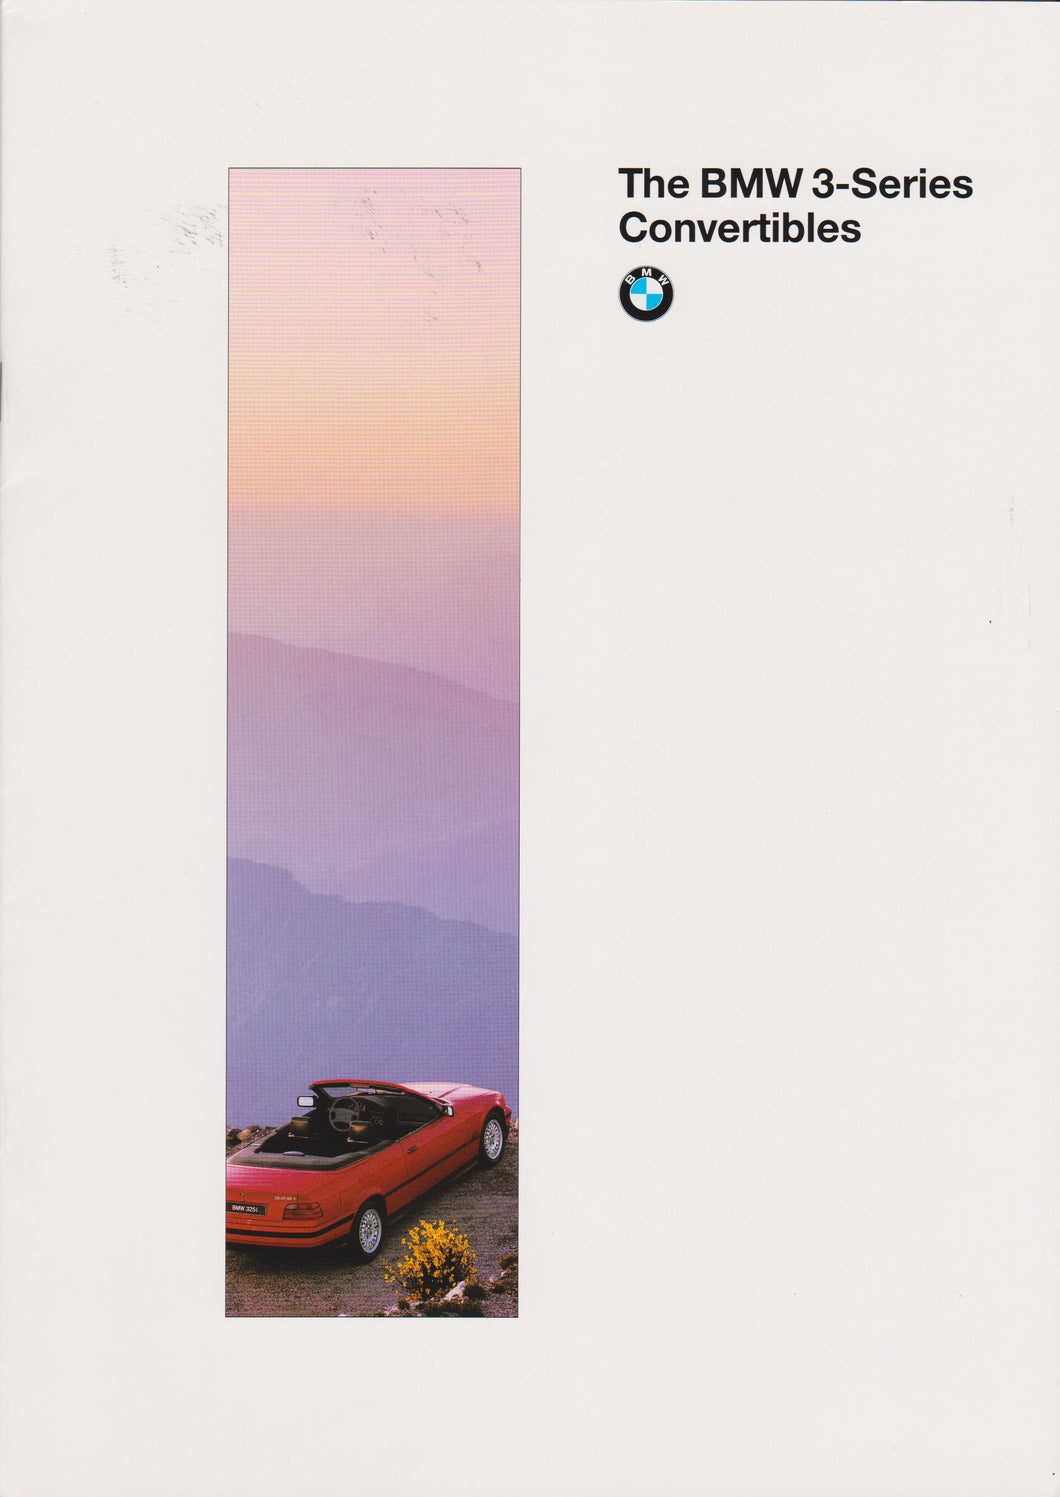 Brochure - The BMW 3-Series Convertibles (1995 printing)